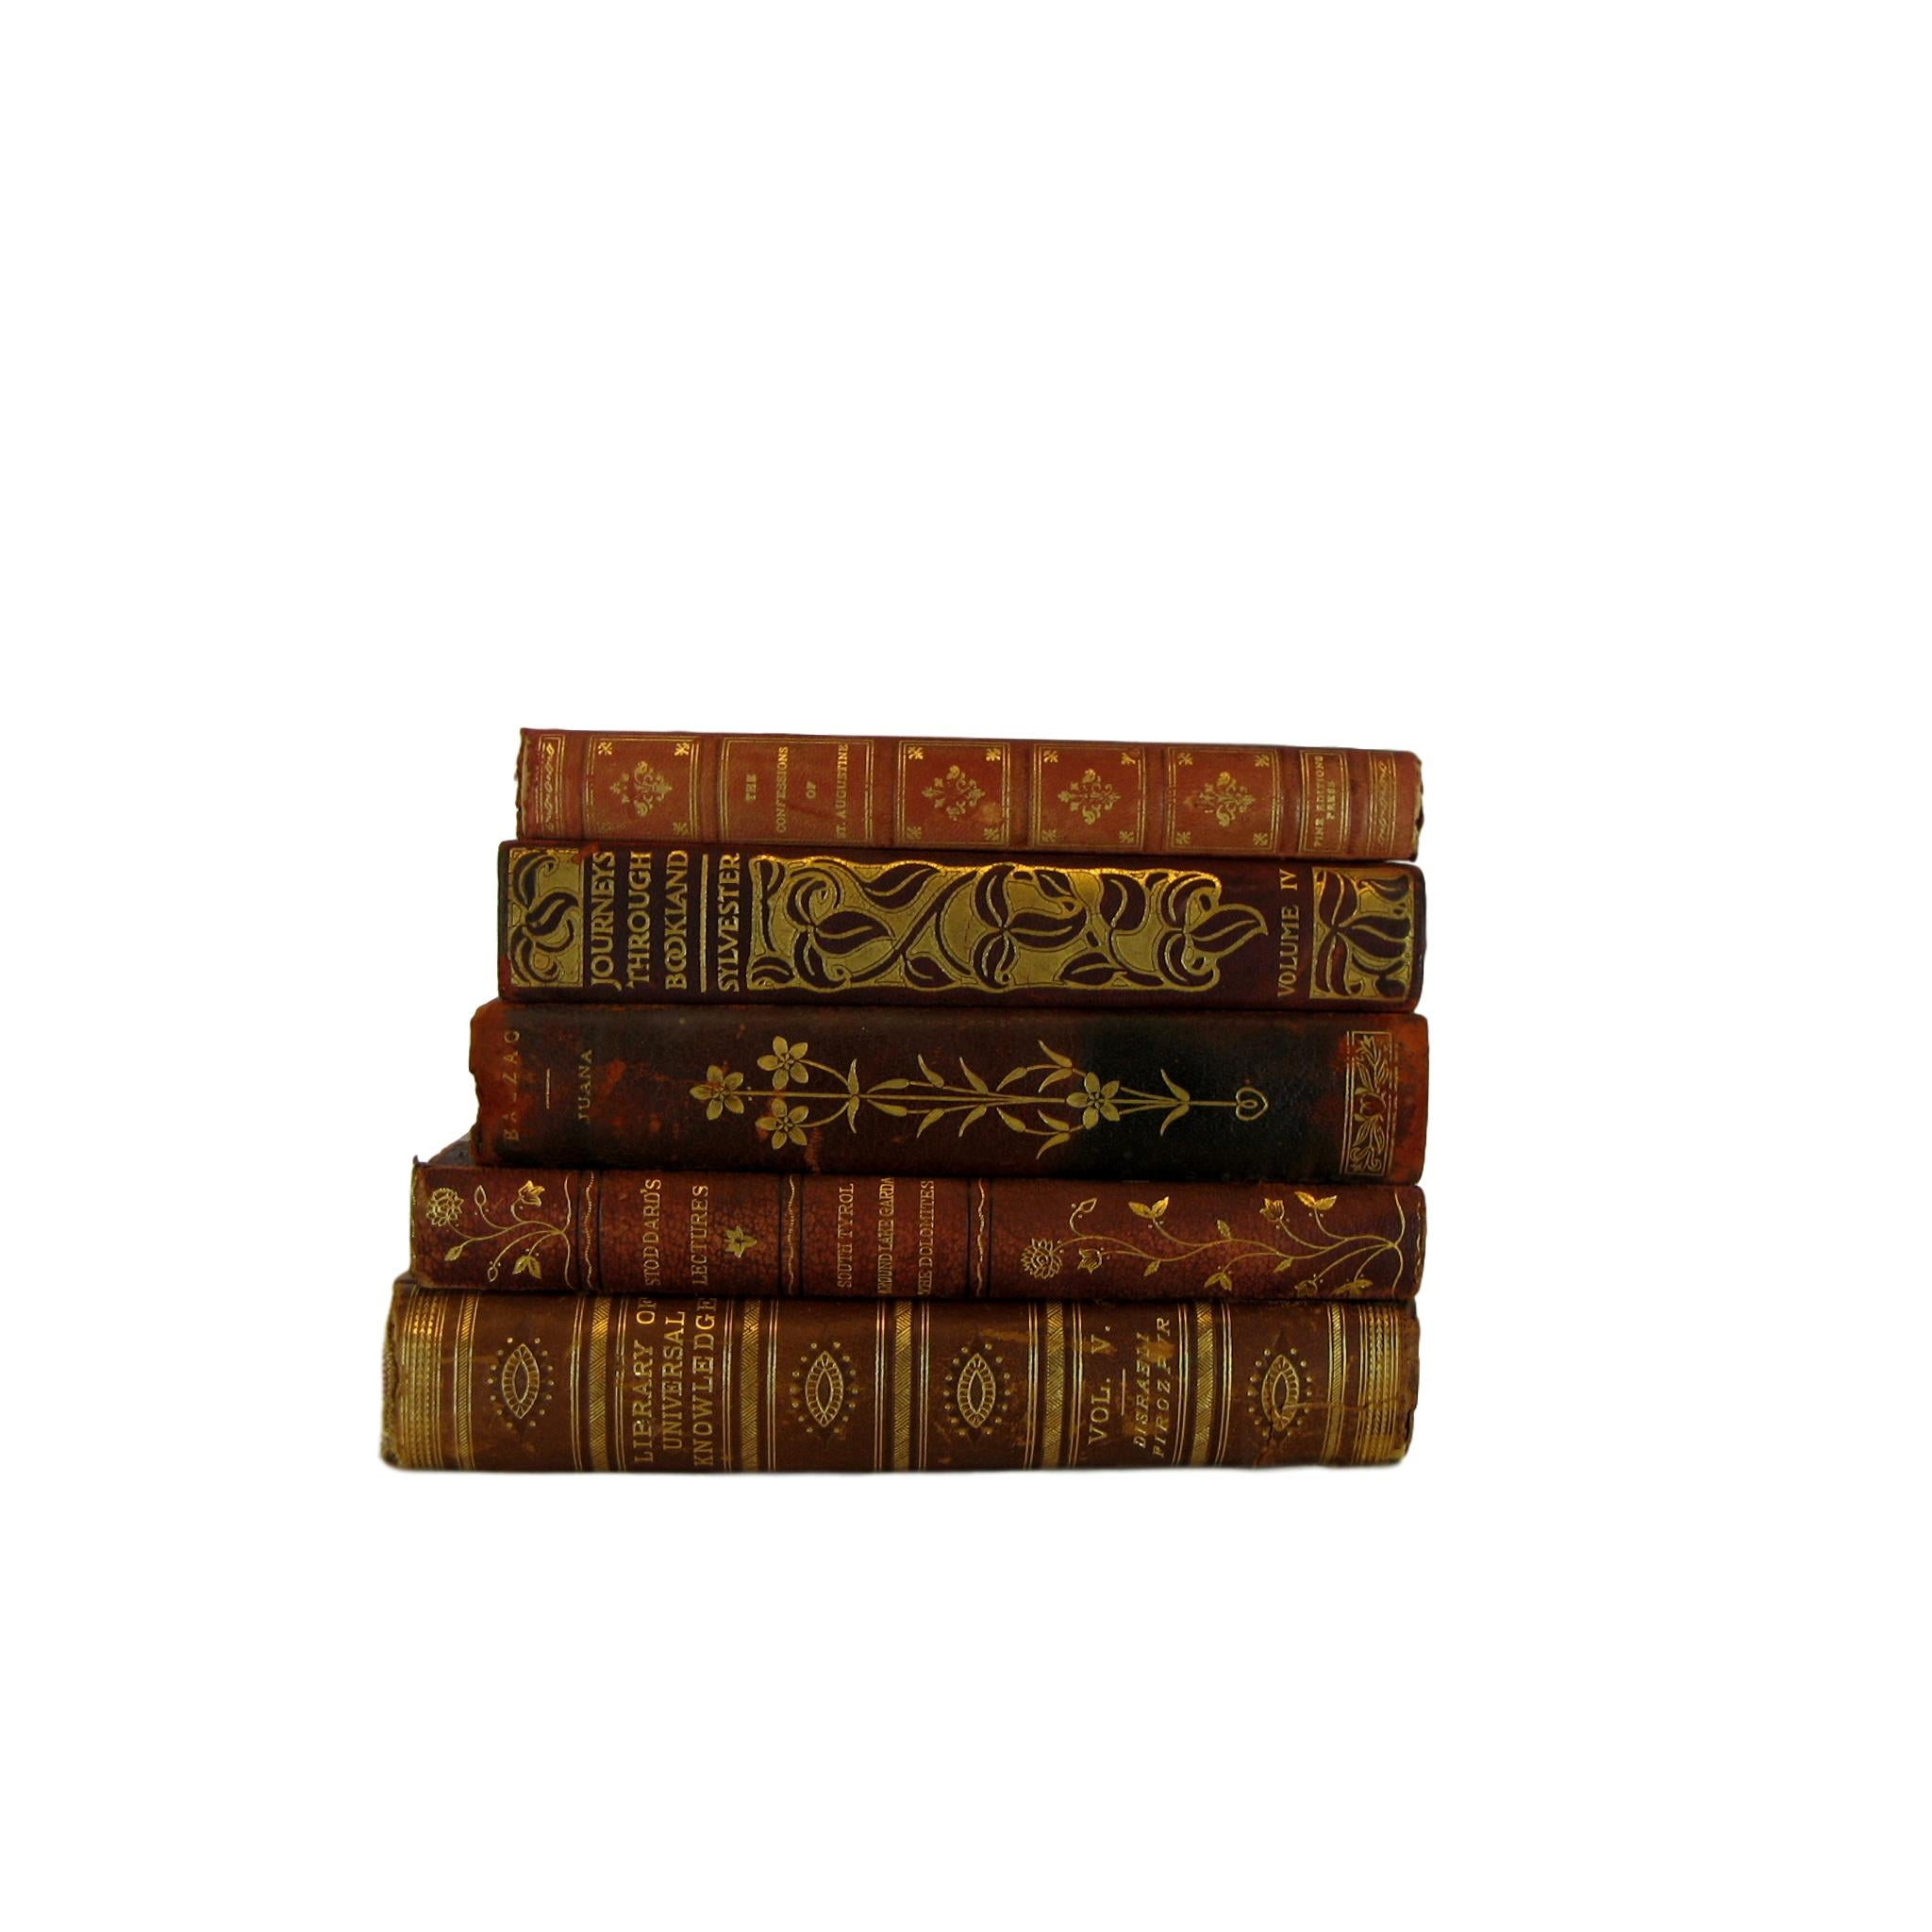 Decorative Leather Books for Mantel Decor, S/5 - Decades of Vintage